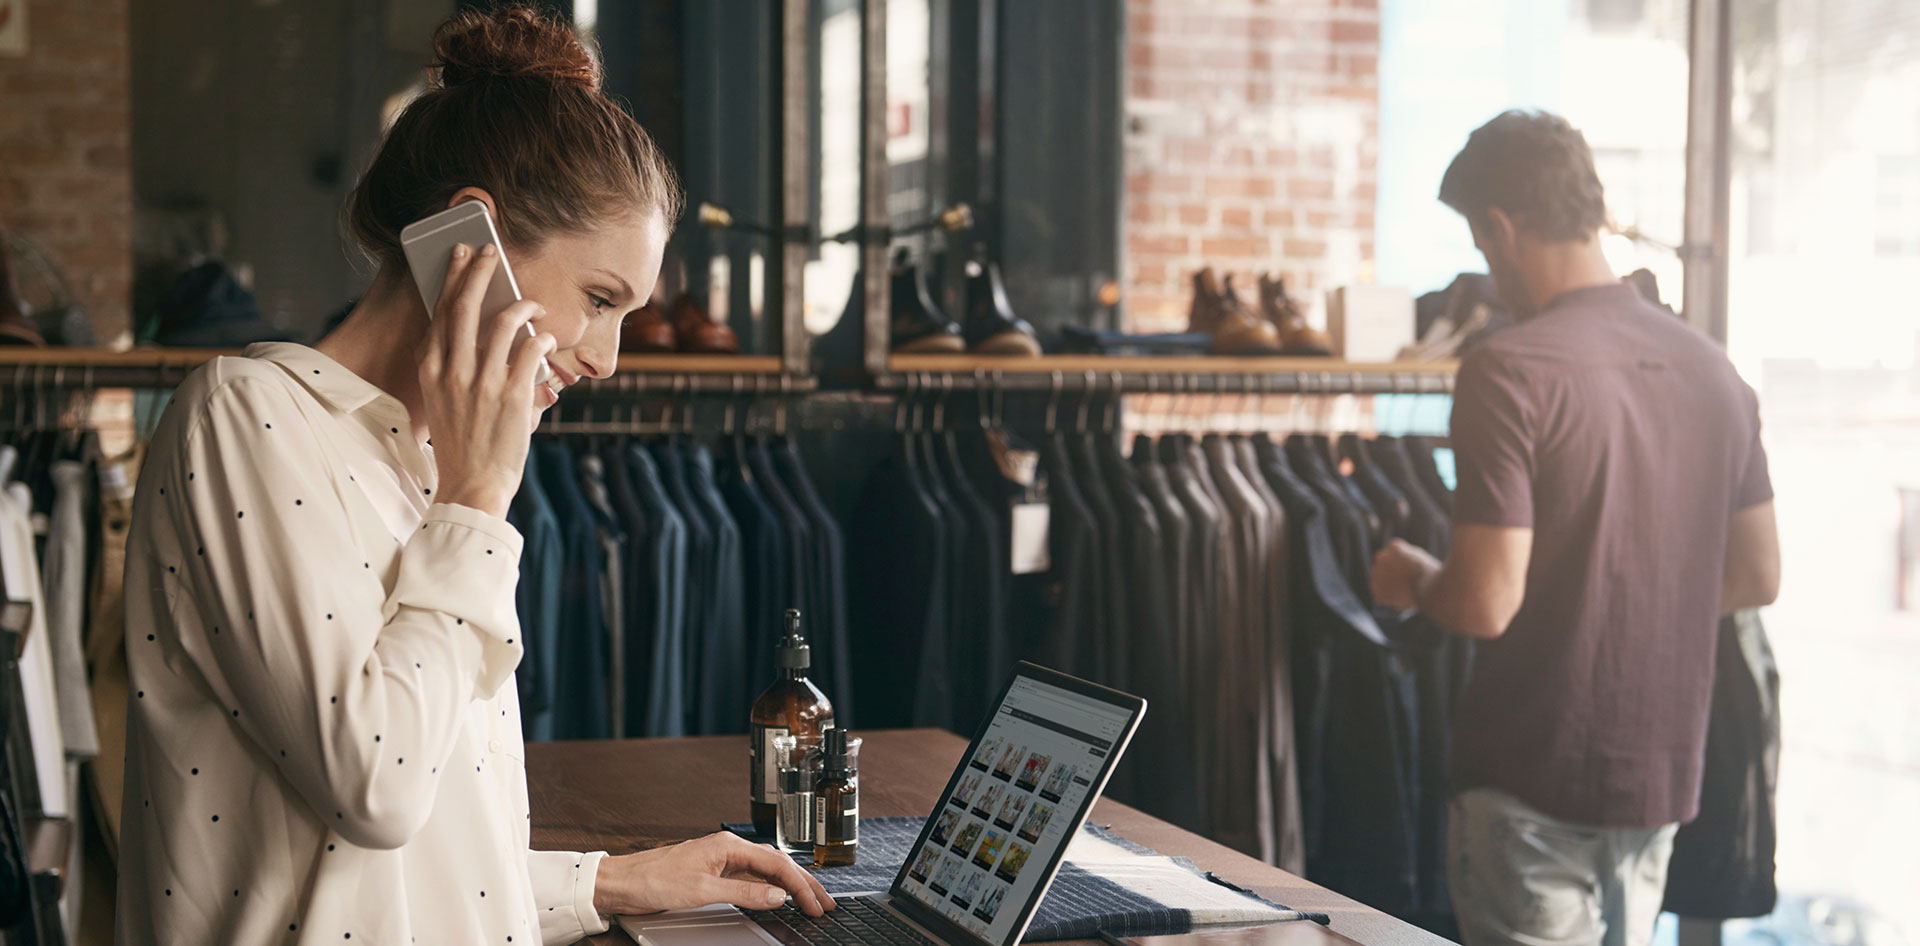 SAP Business One Retail Industry presented by Leverage Business One